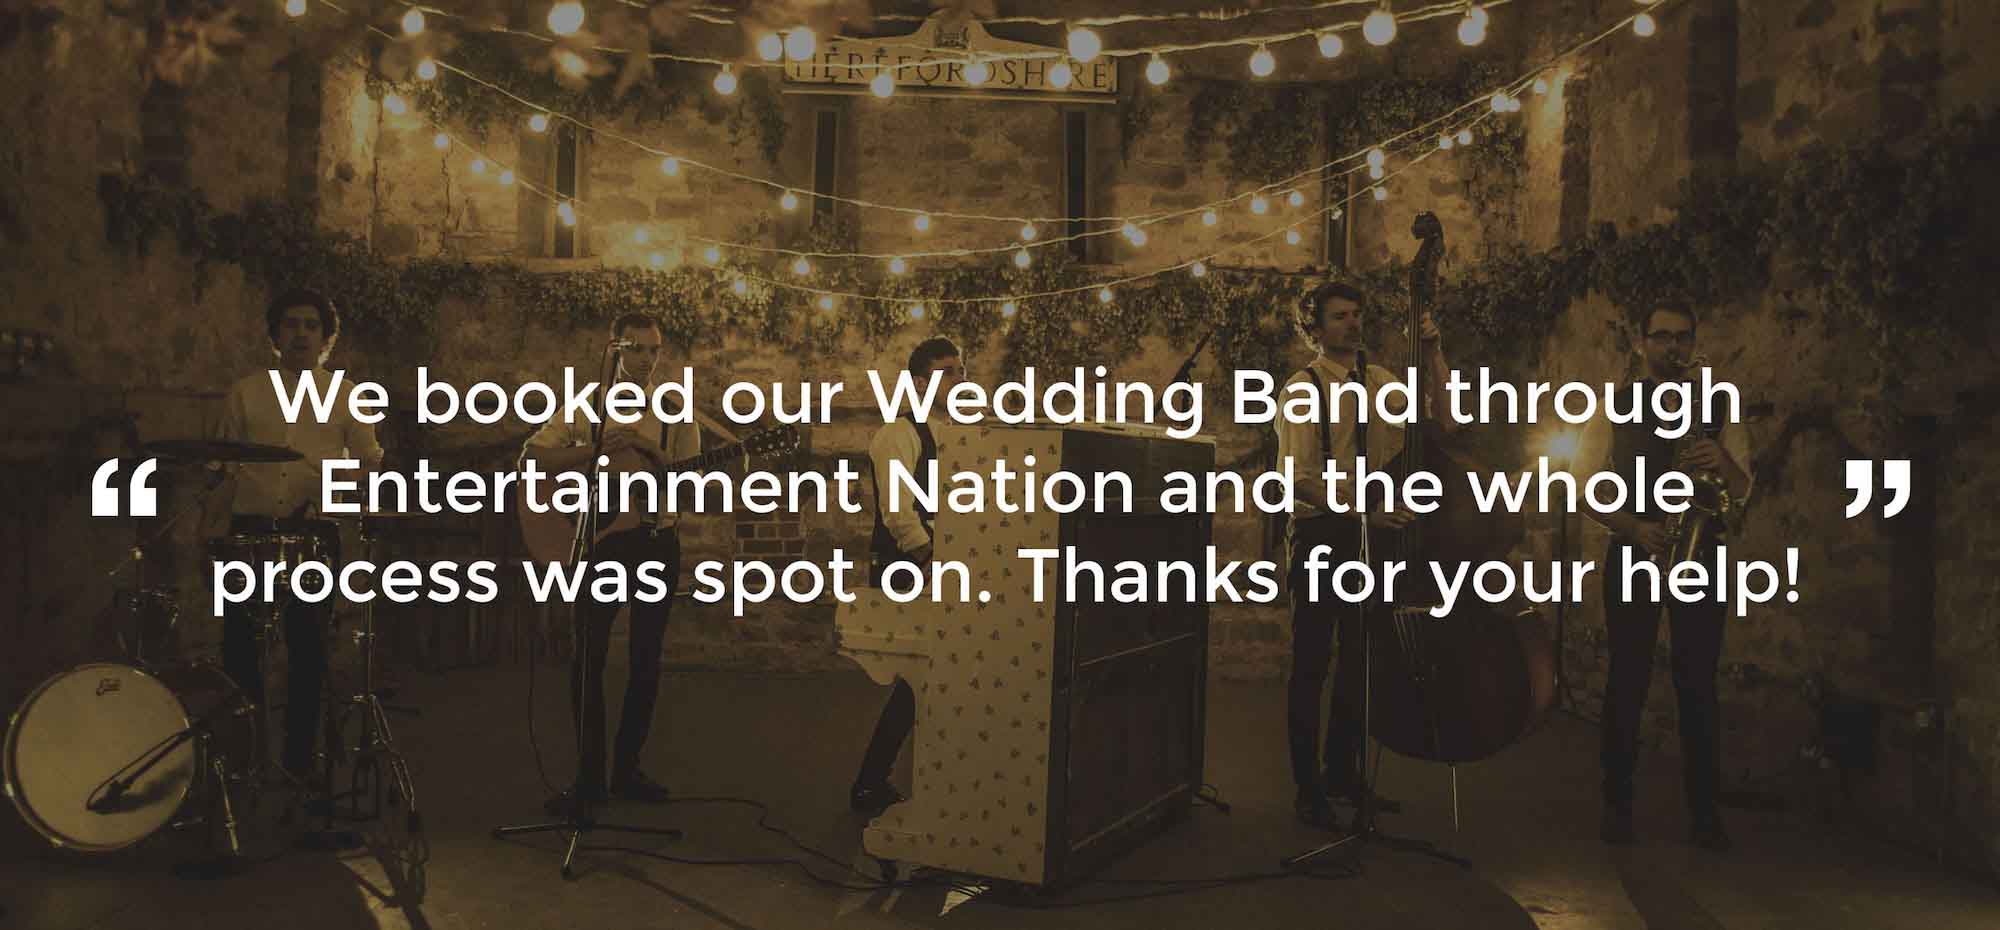 Client Review of a Wedding Band Essex